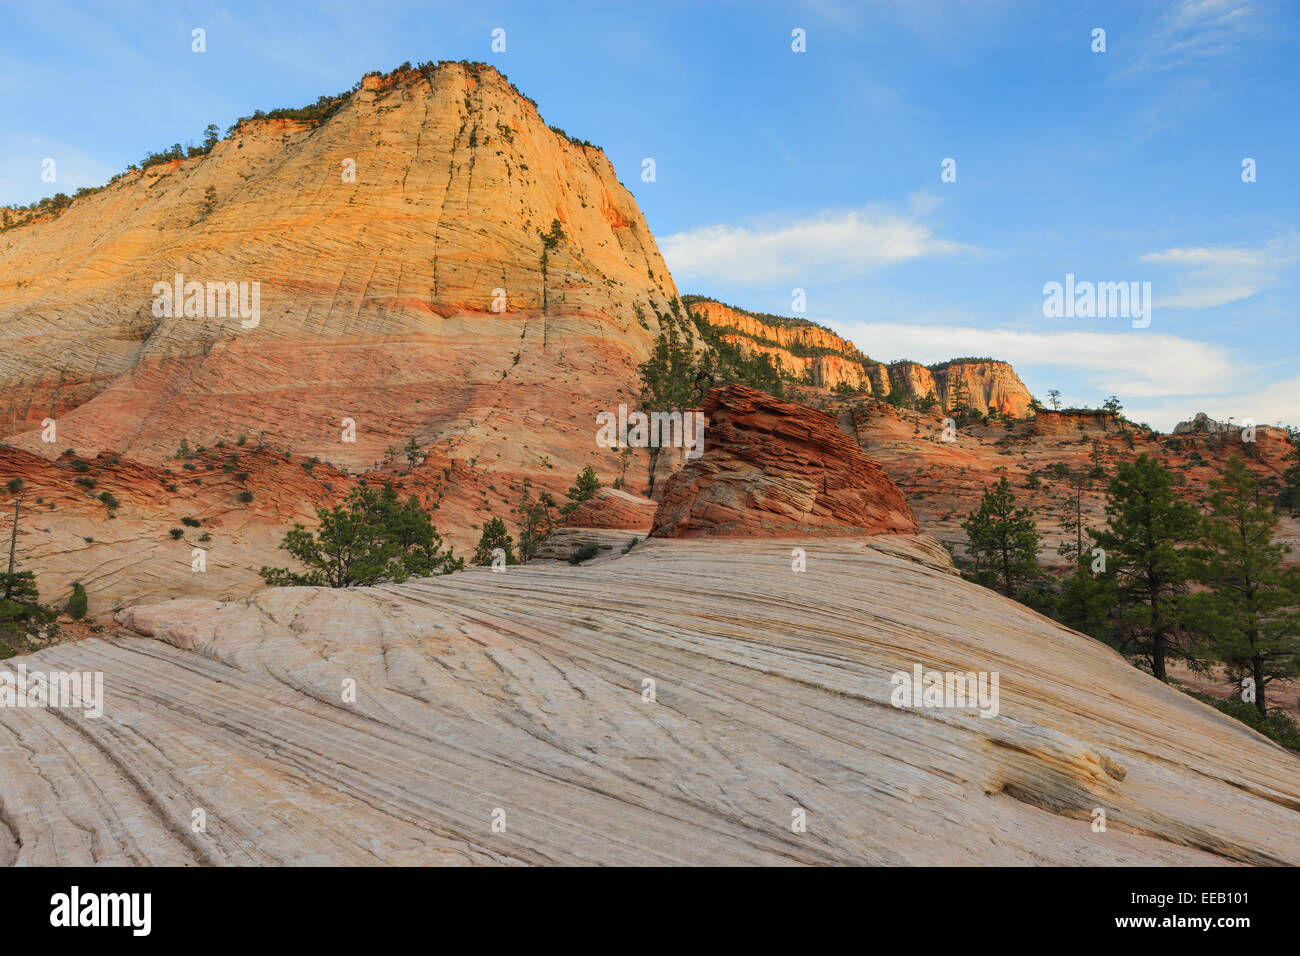 Checkerboard Mesa is located just east of the Zion National Park, Utah, USA - Stock Image